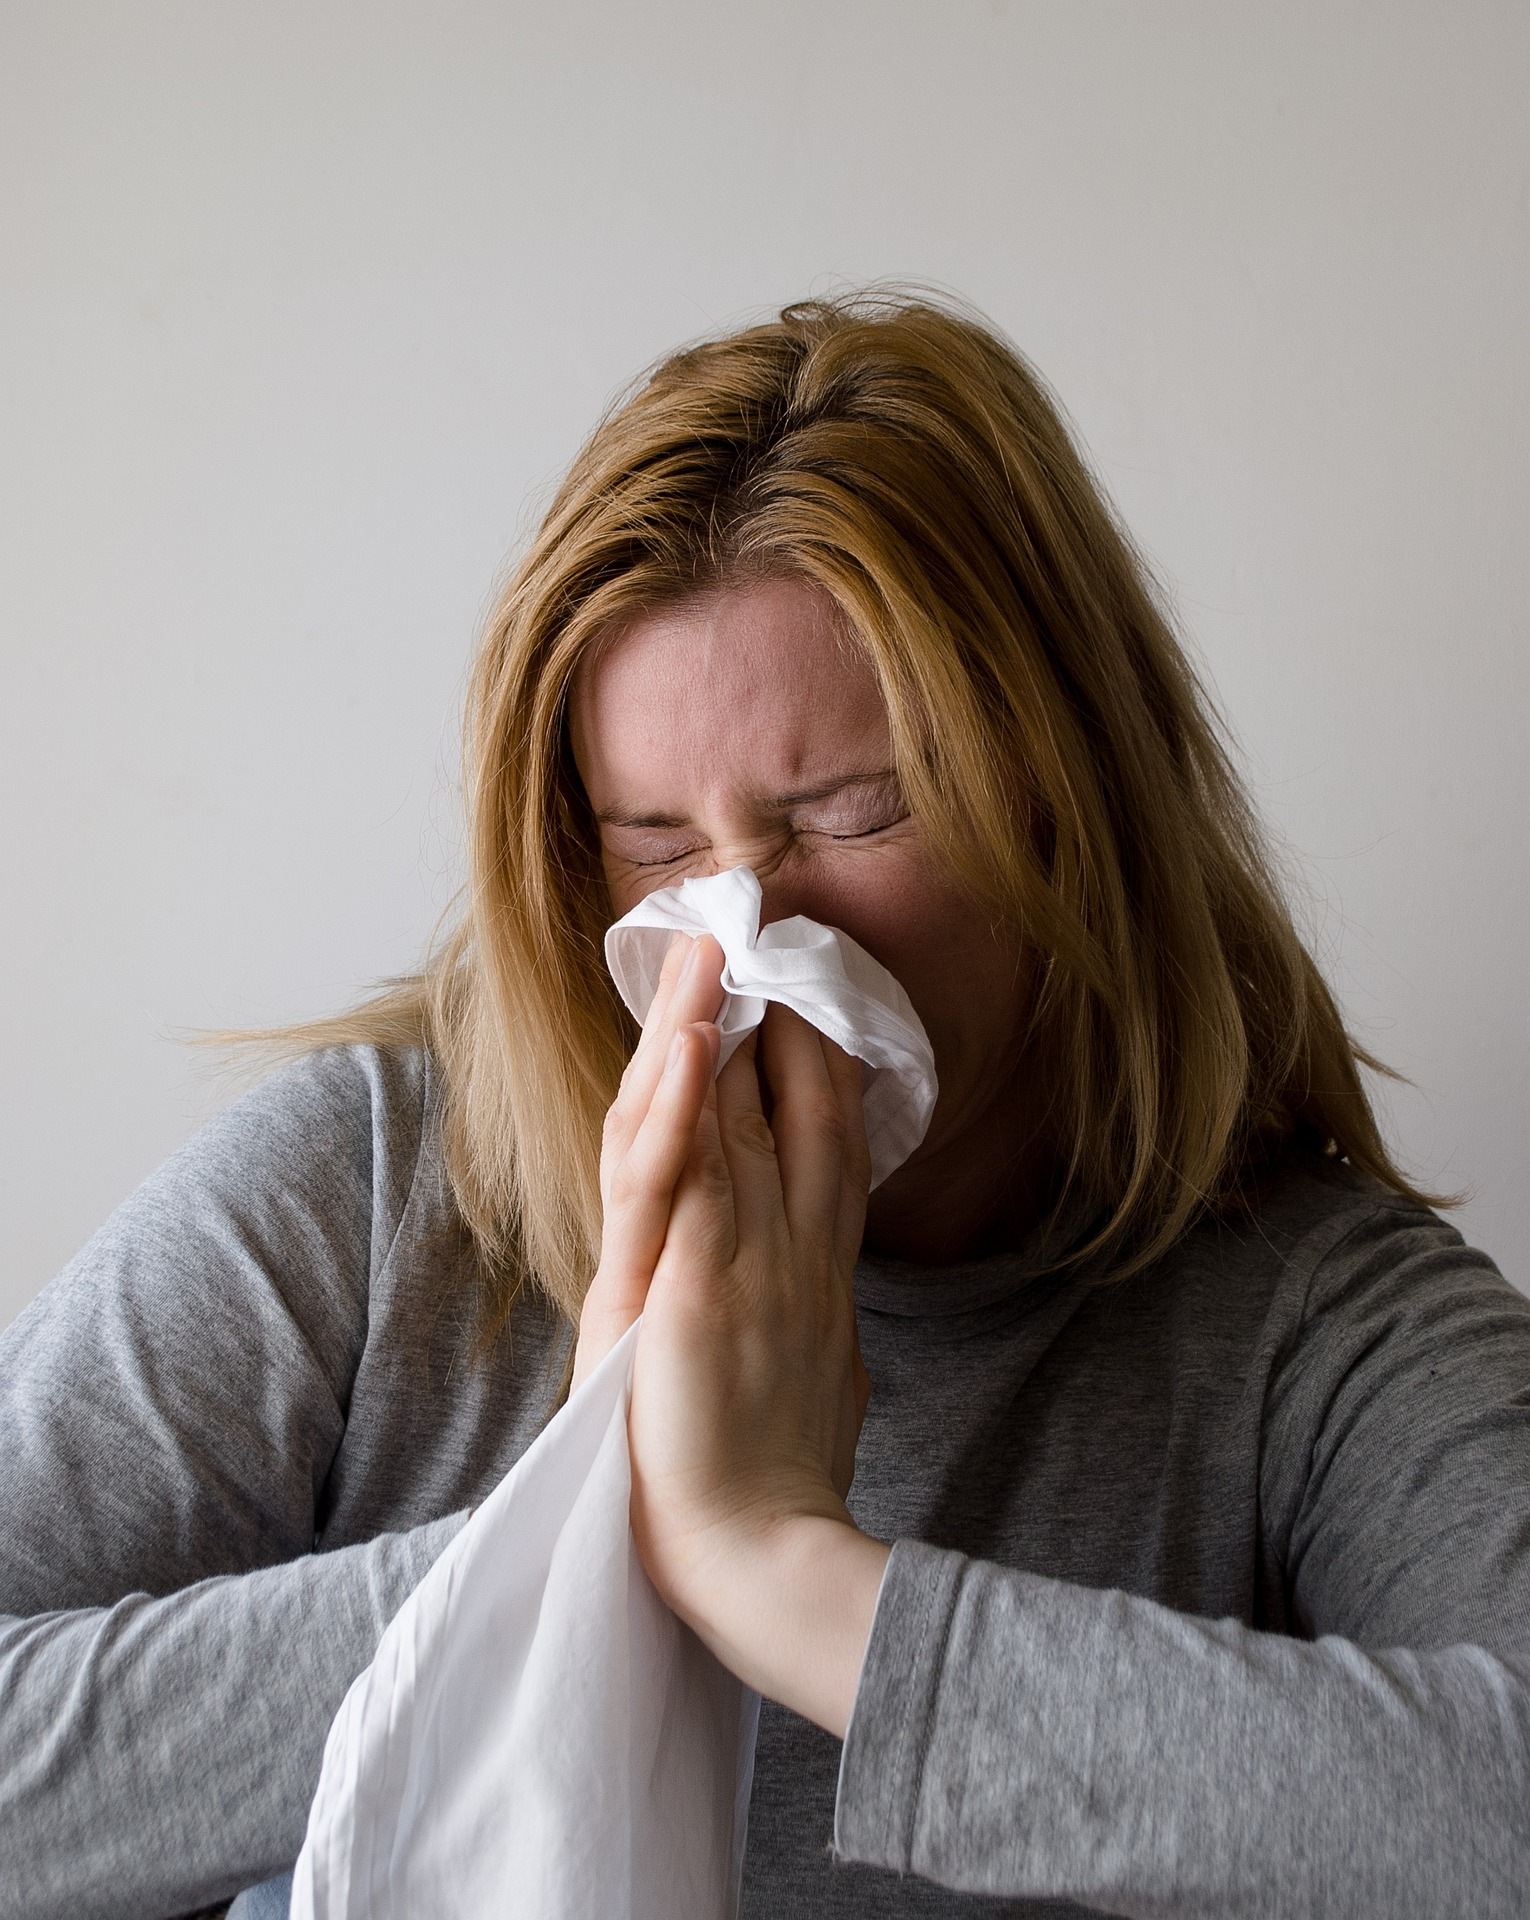 The common cold is a top cold weather disease